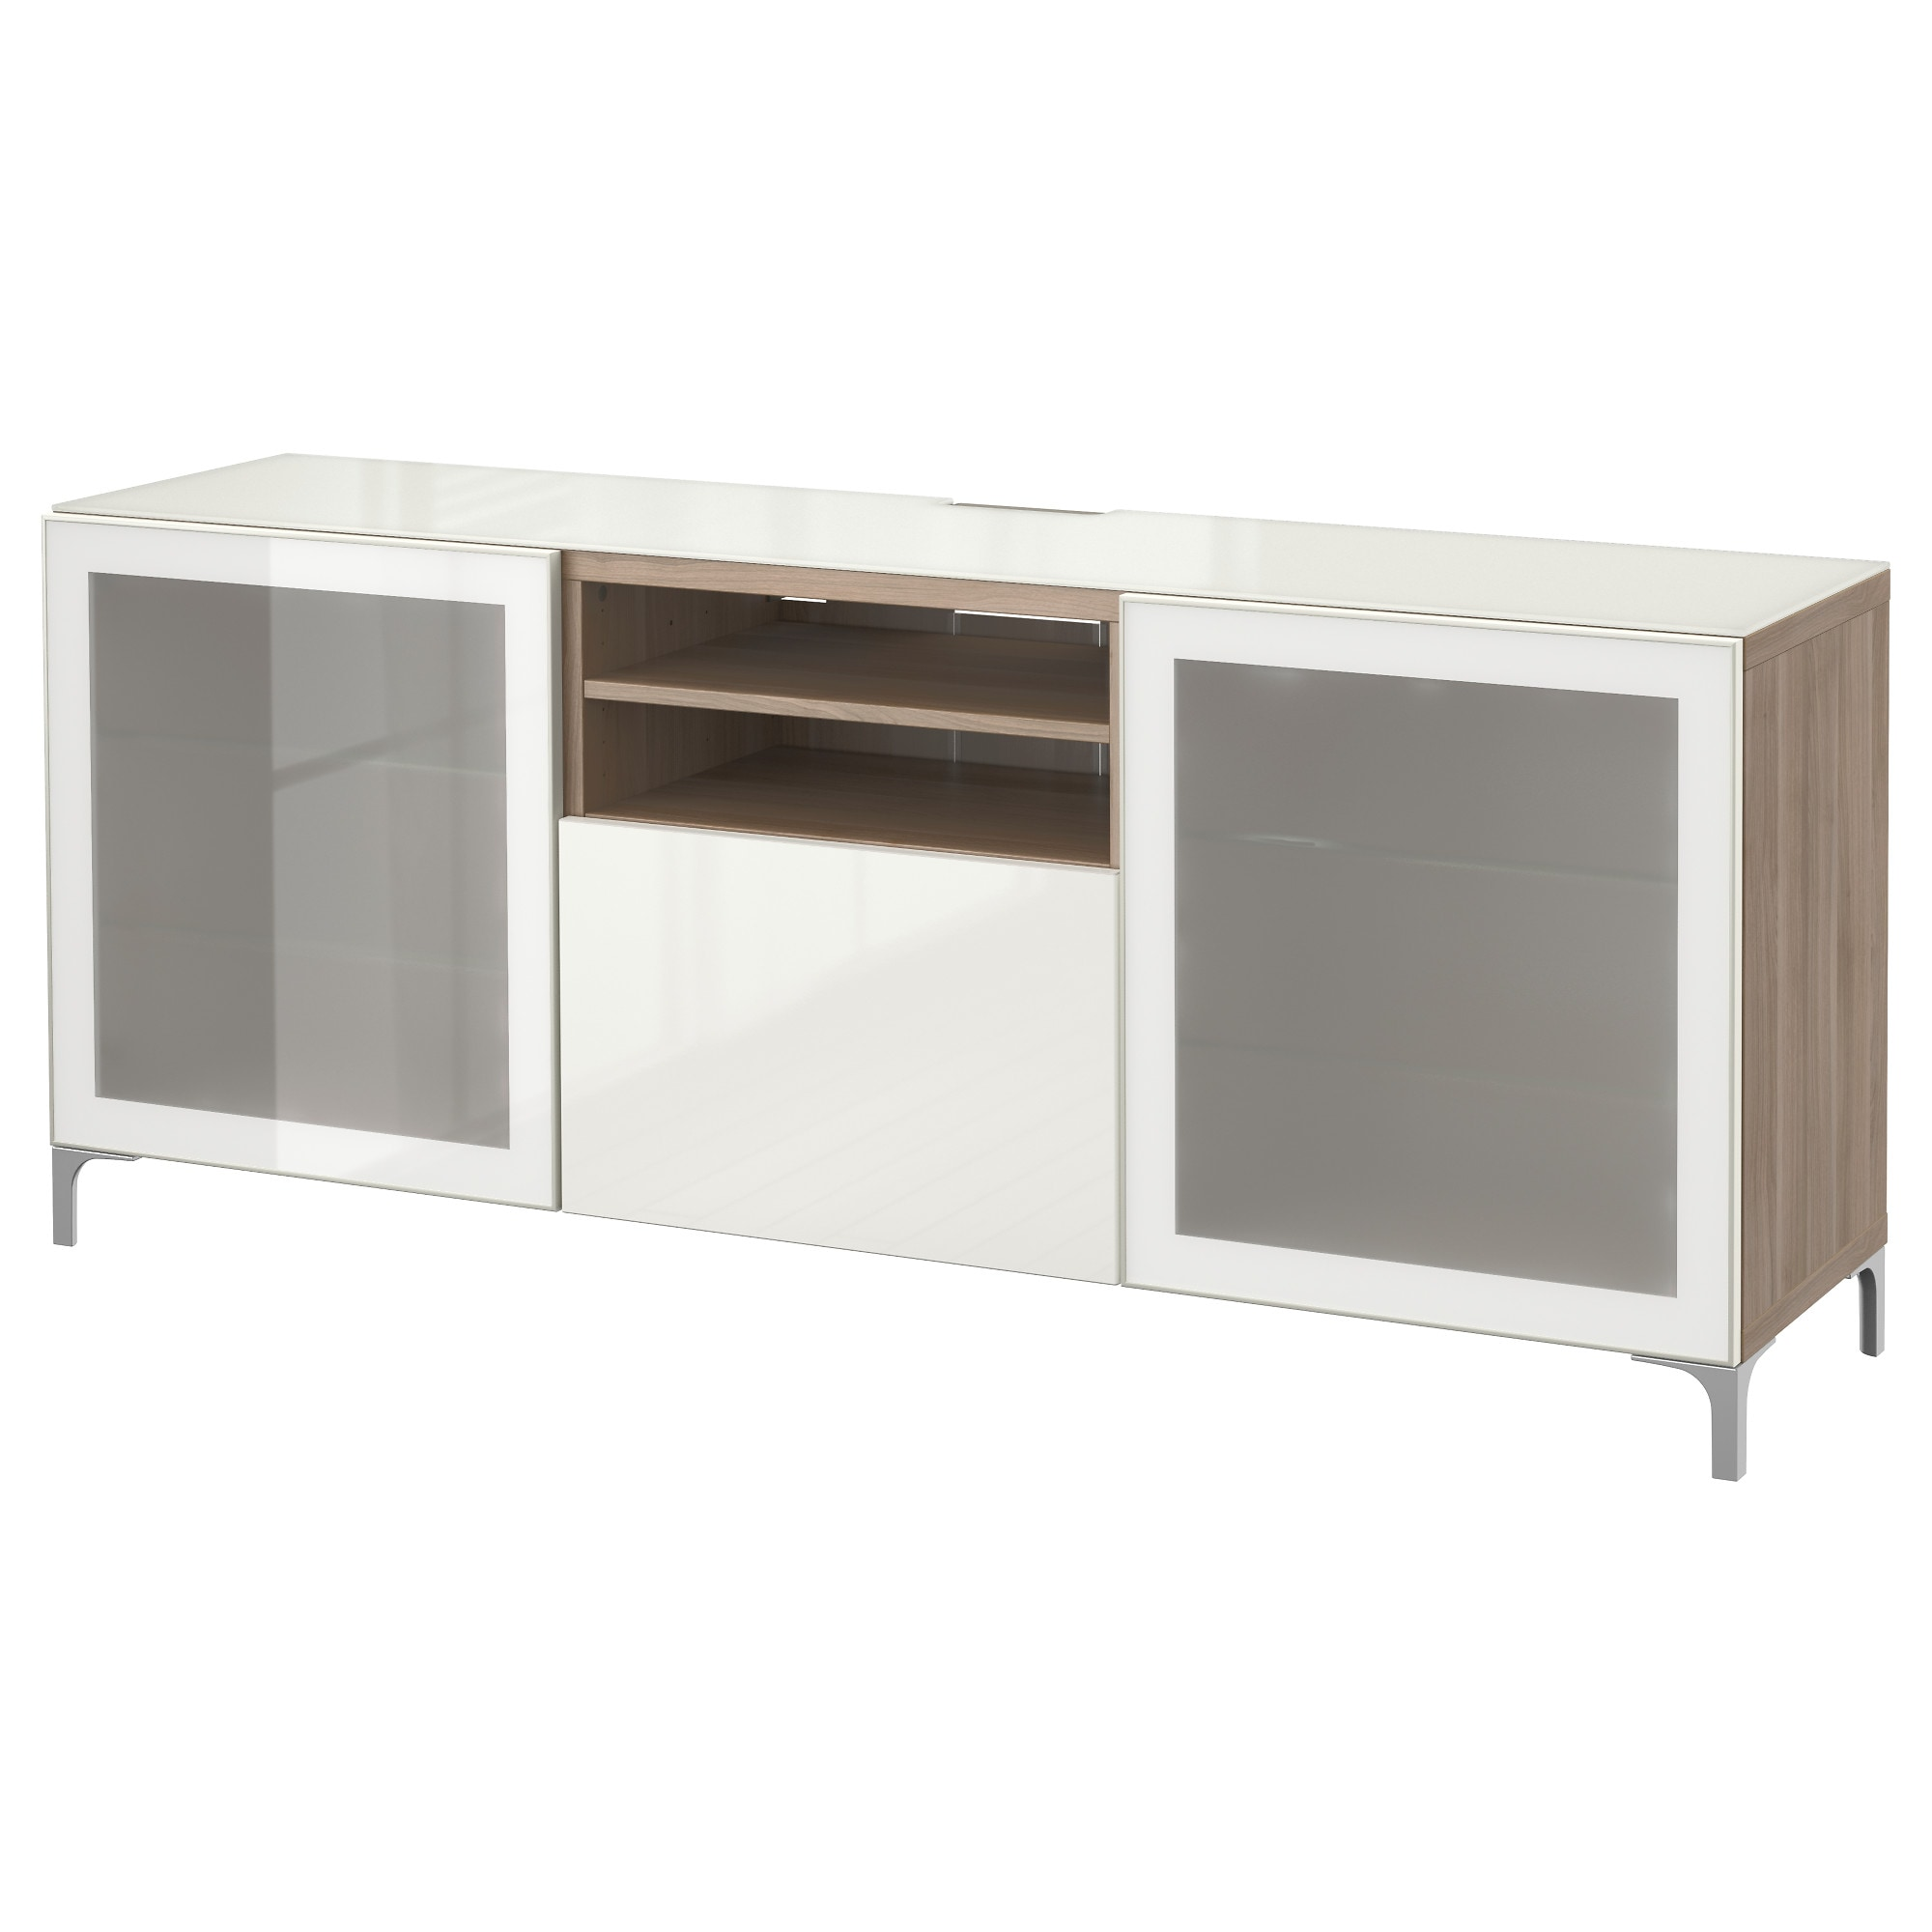 Best Banc Tv Lappviken Sindvik Blanc Verre Transparent  # Meuble Tv En Verre Ikea